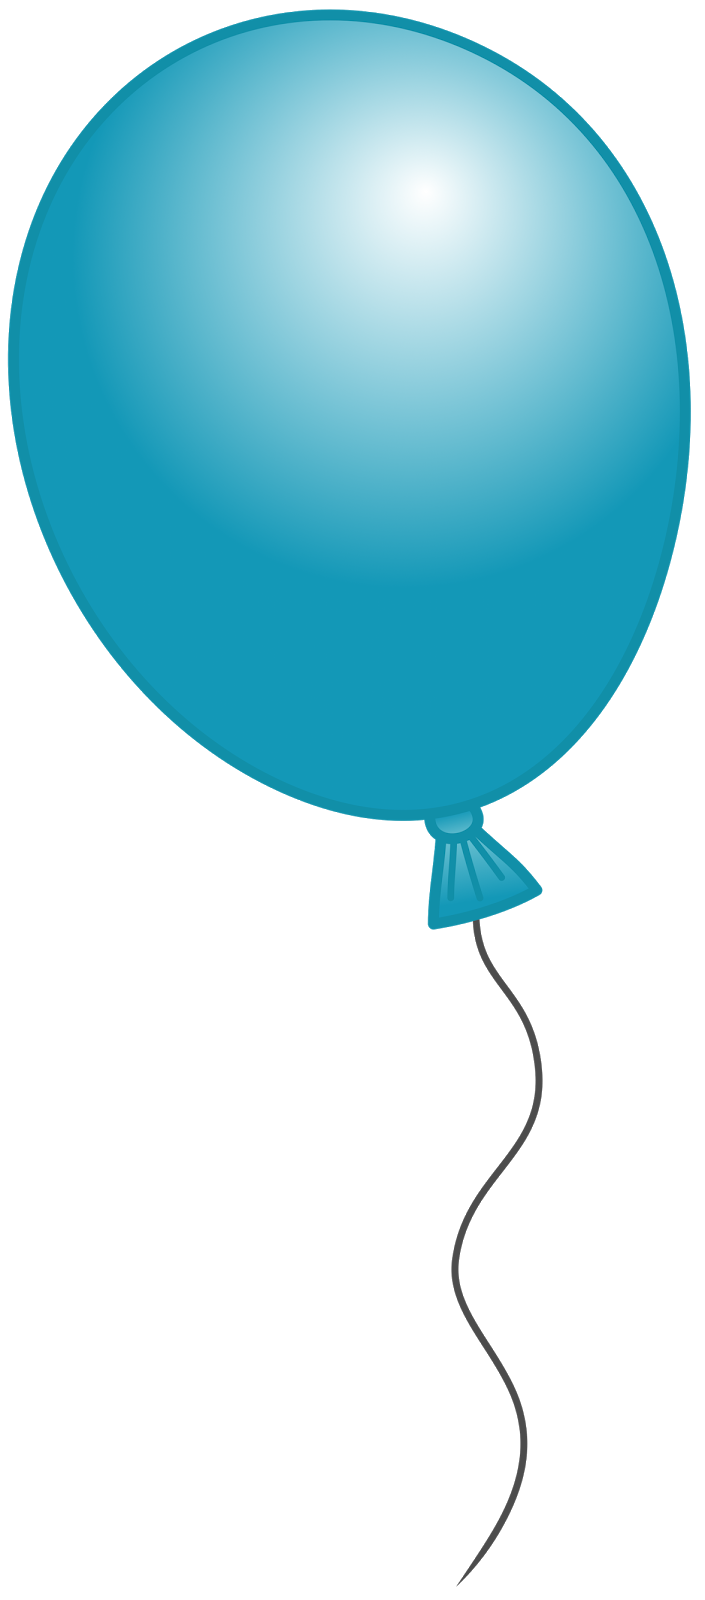 Baby ballons with string in green clipart clipart library download Free Blue Balloon Cliparts, Download Free Clip Art, Free Clip Art on ... clipart library download